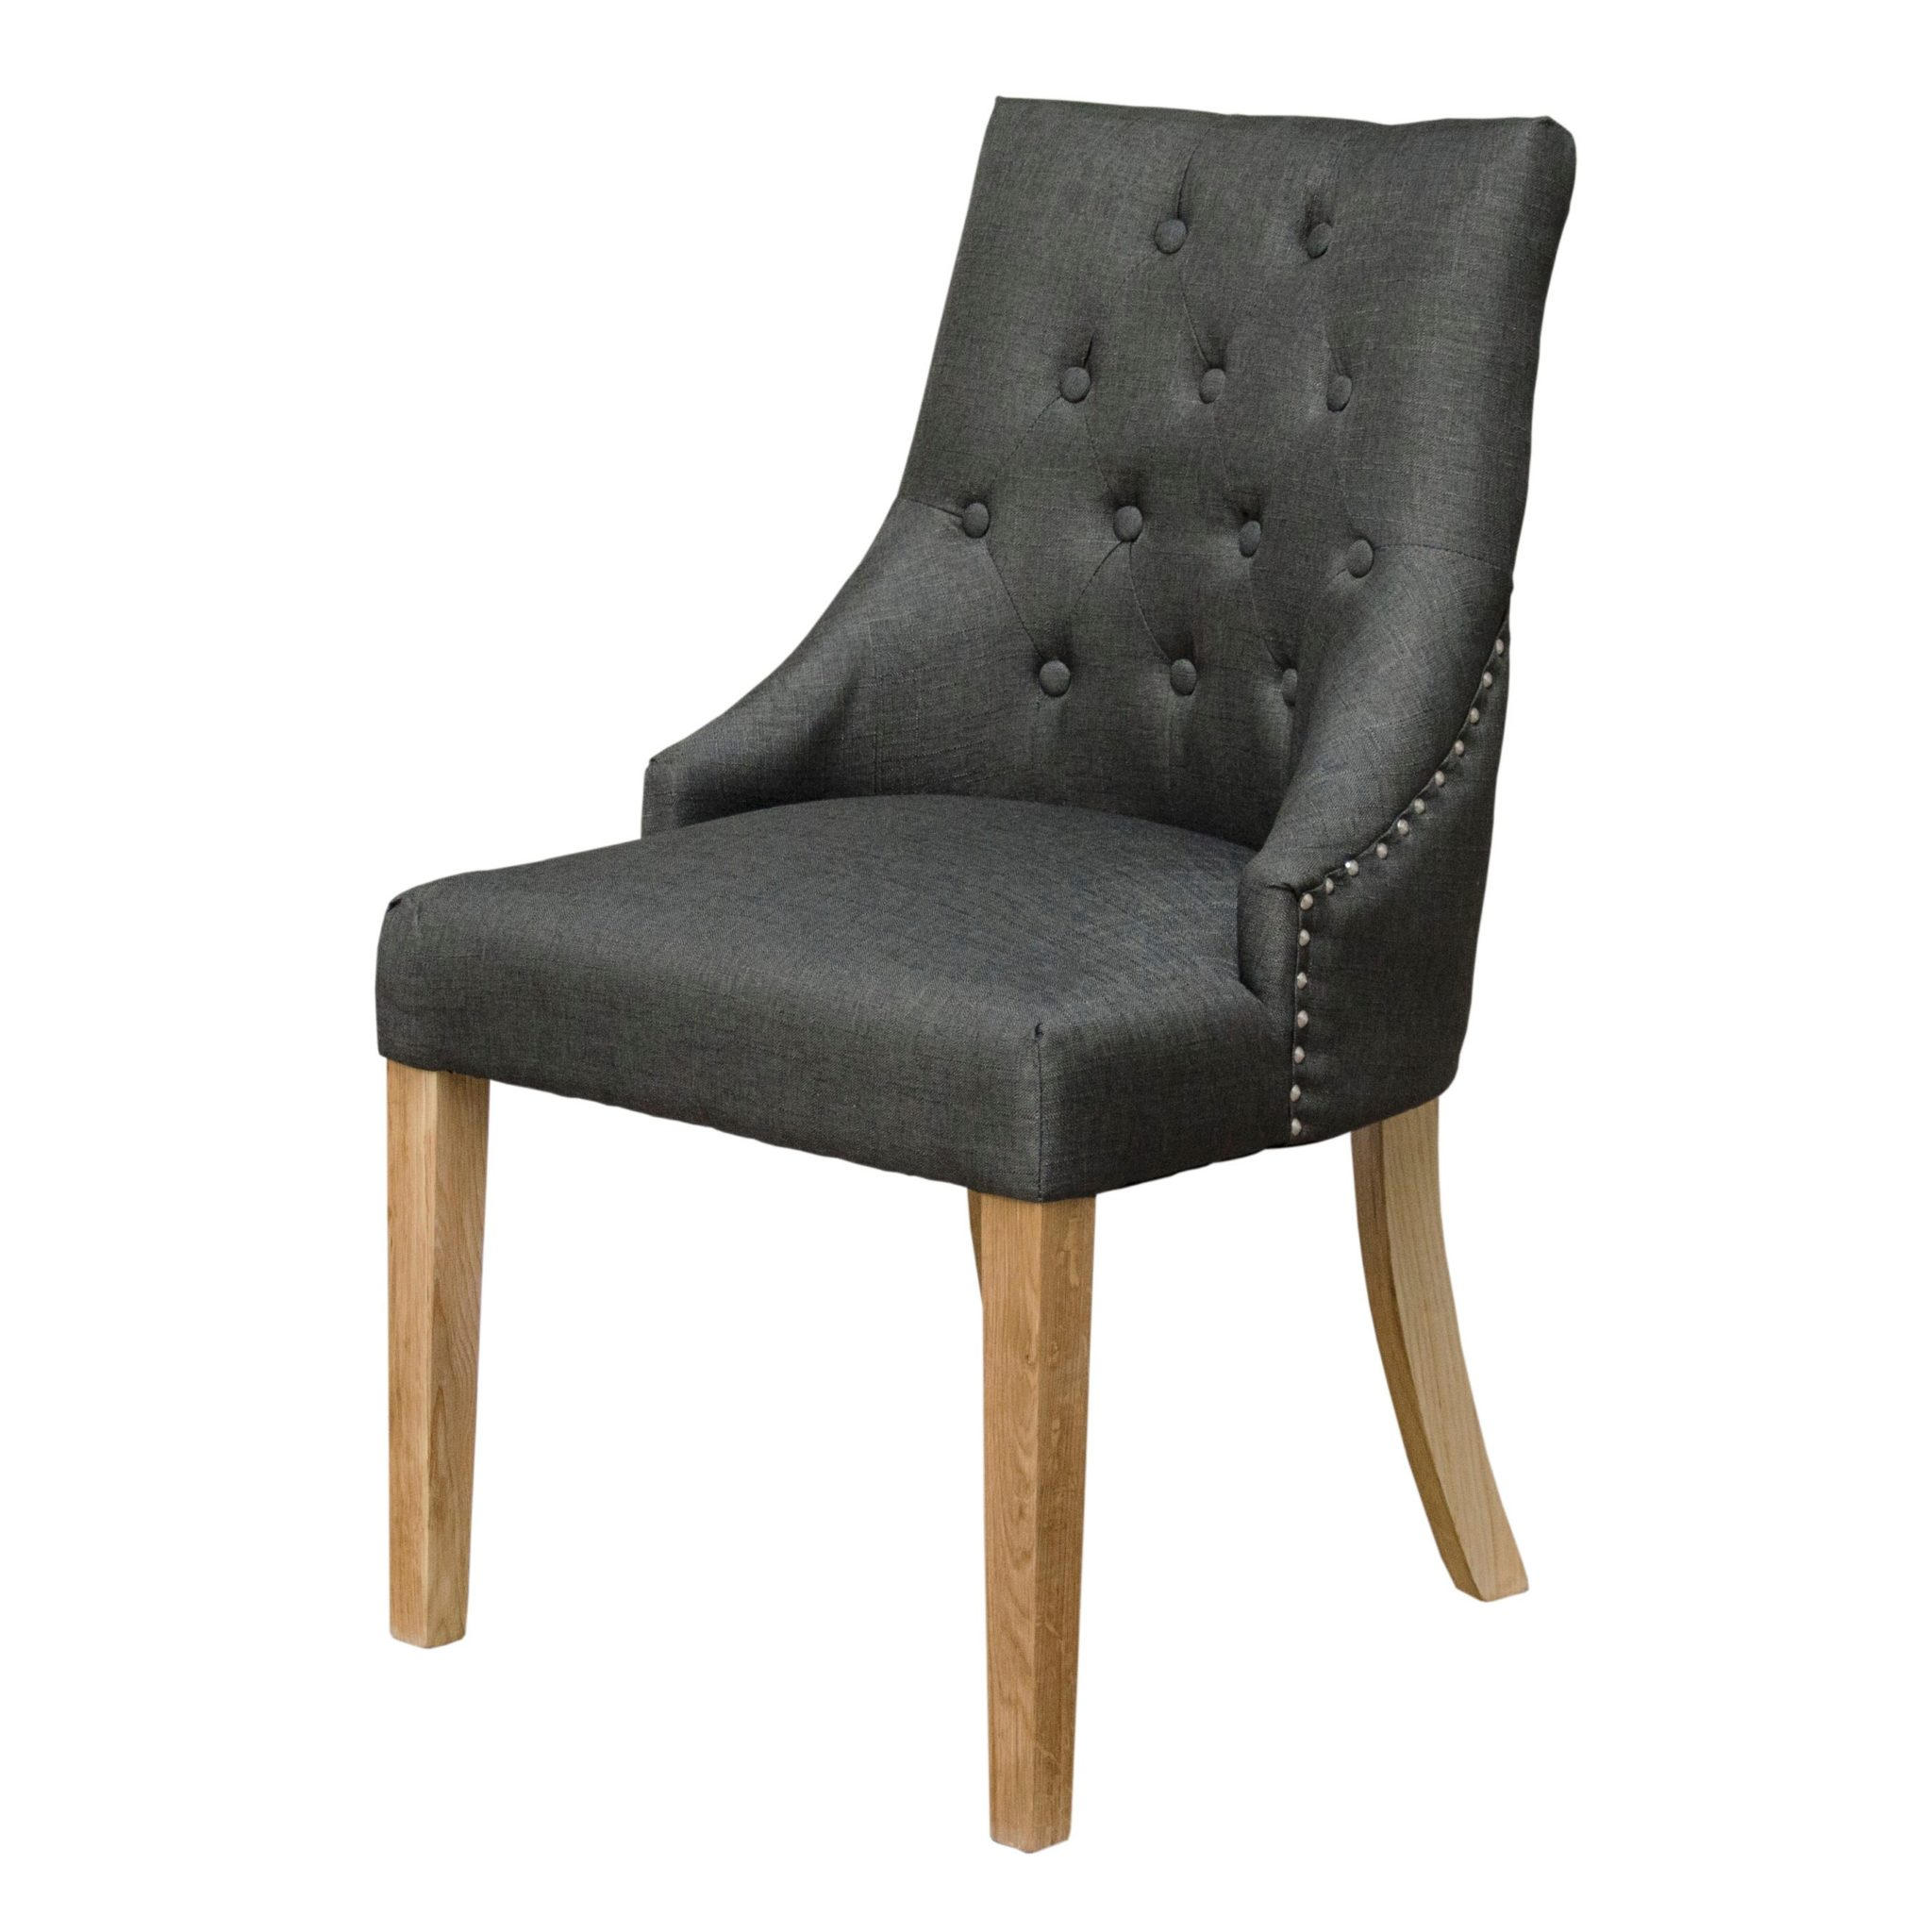 Windsor fabric dining chairs - charcoal